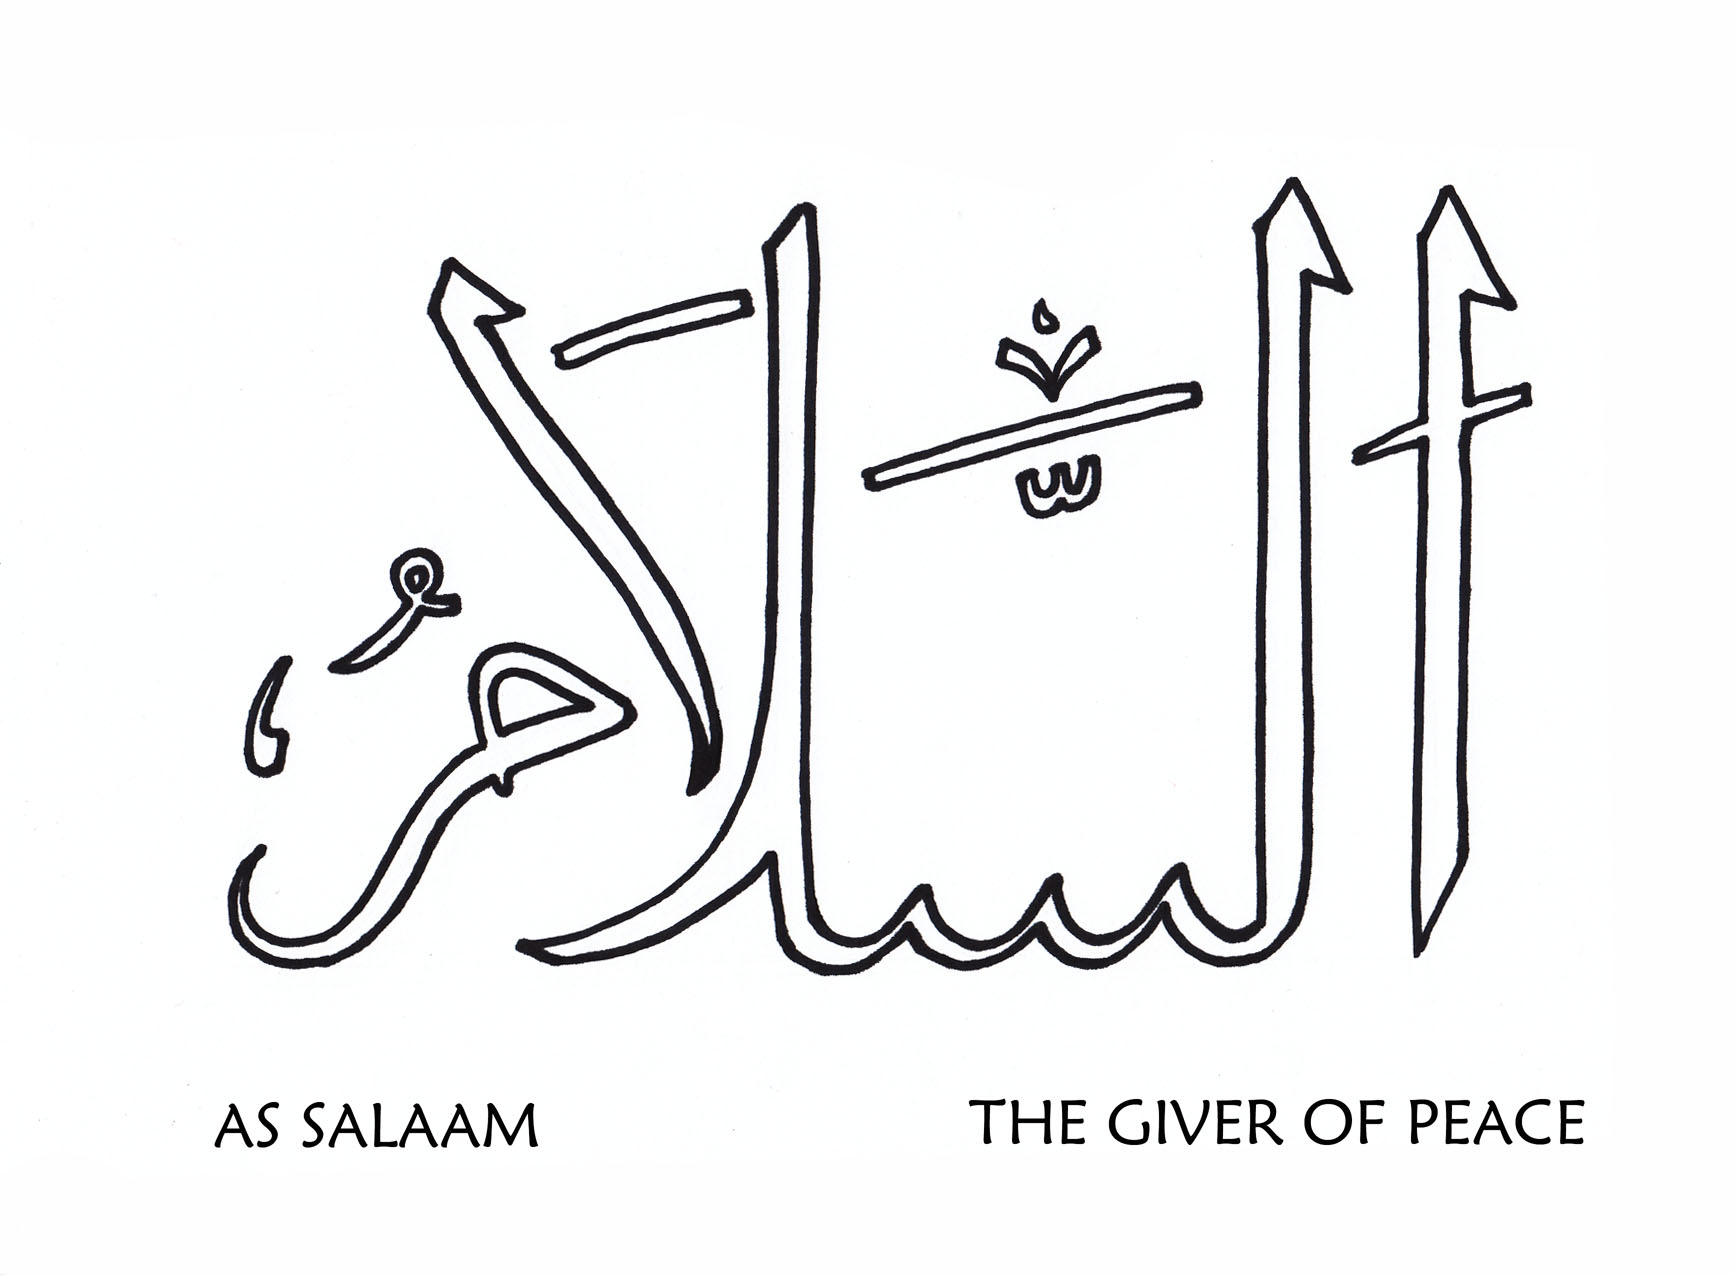 99 names of allah coloring pages photo - 1